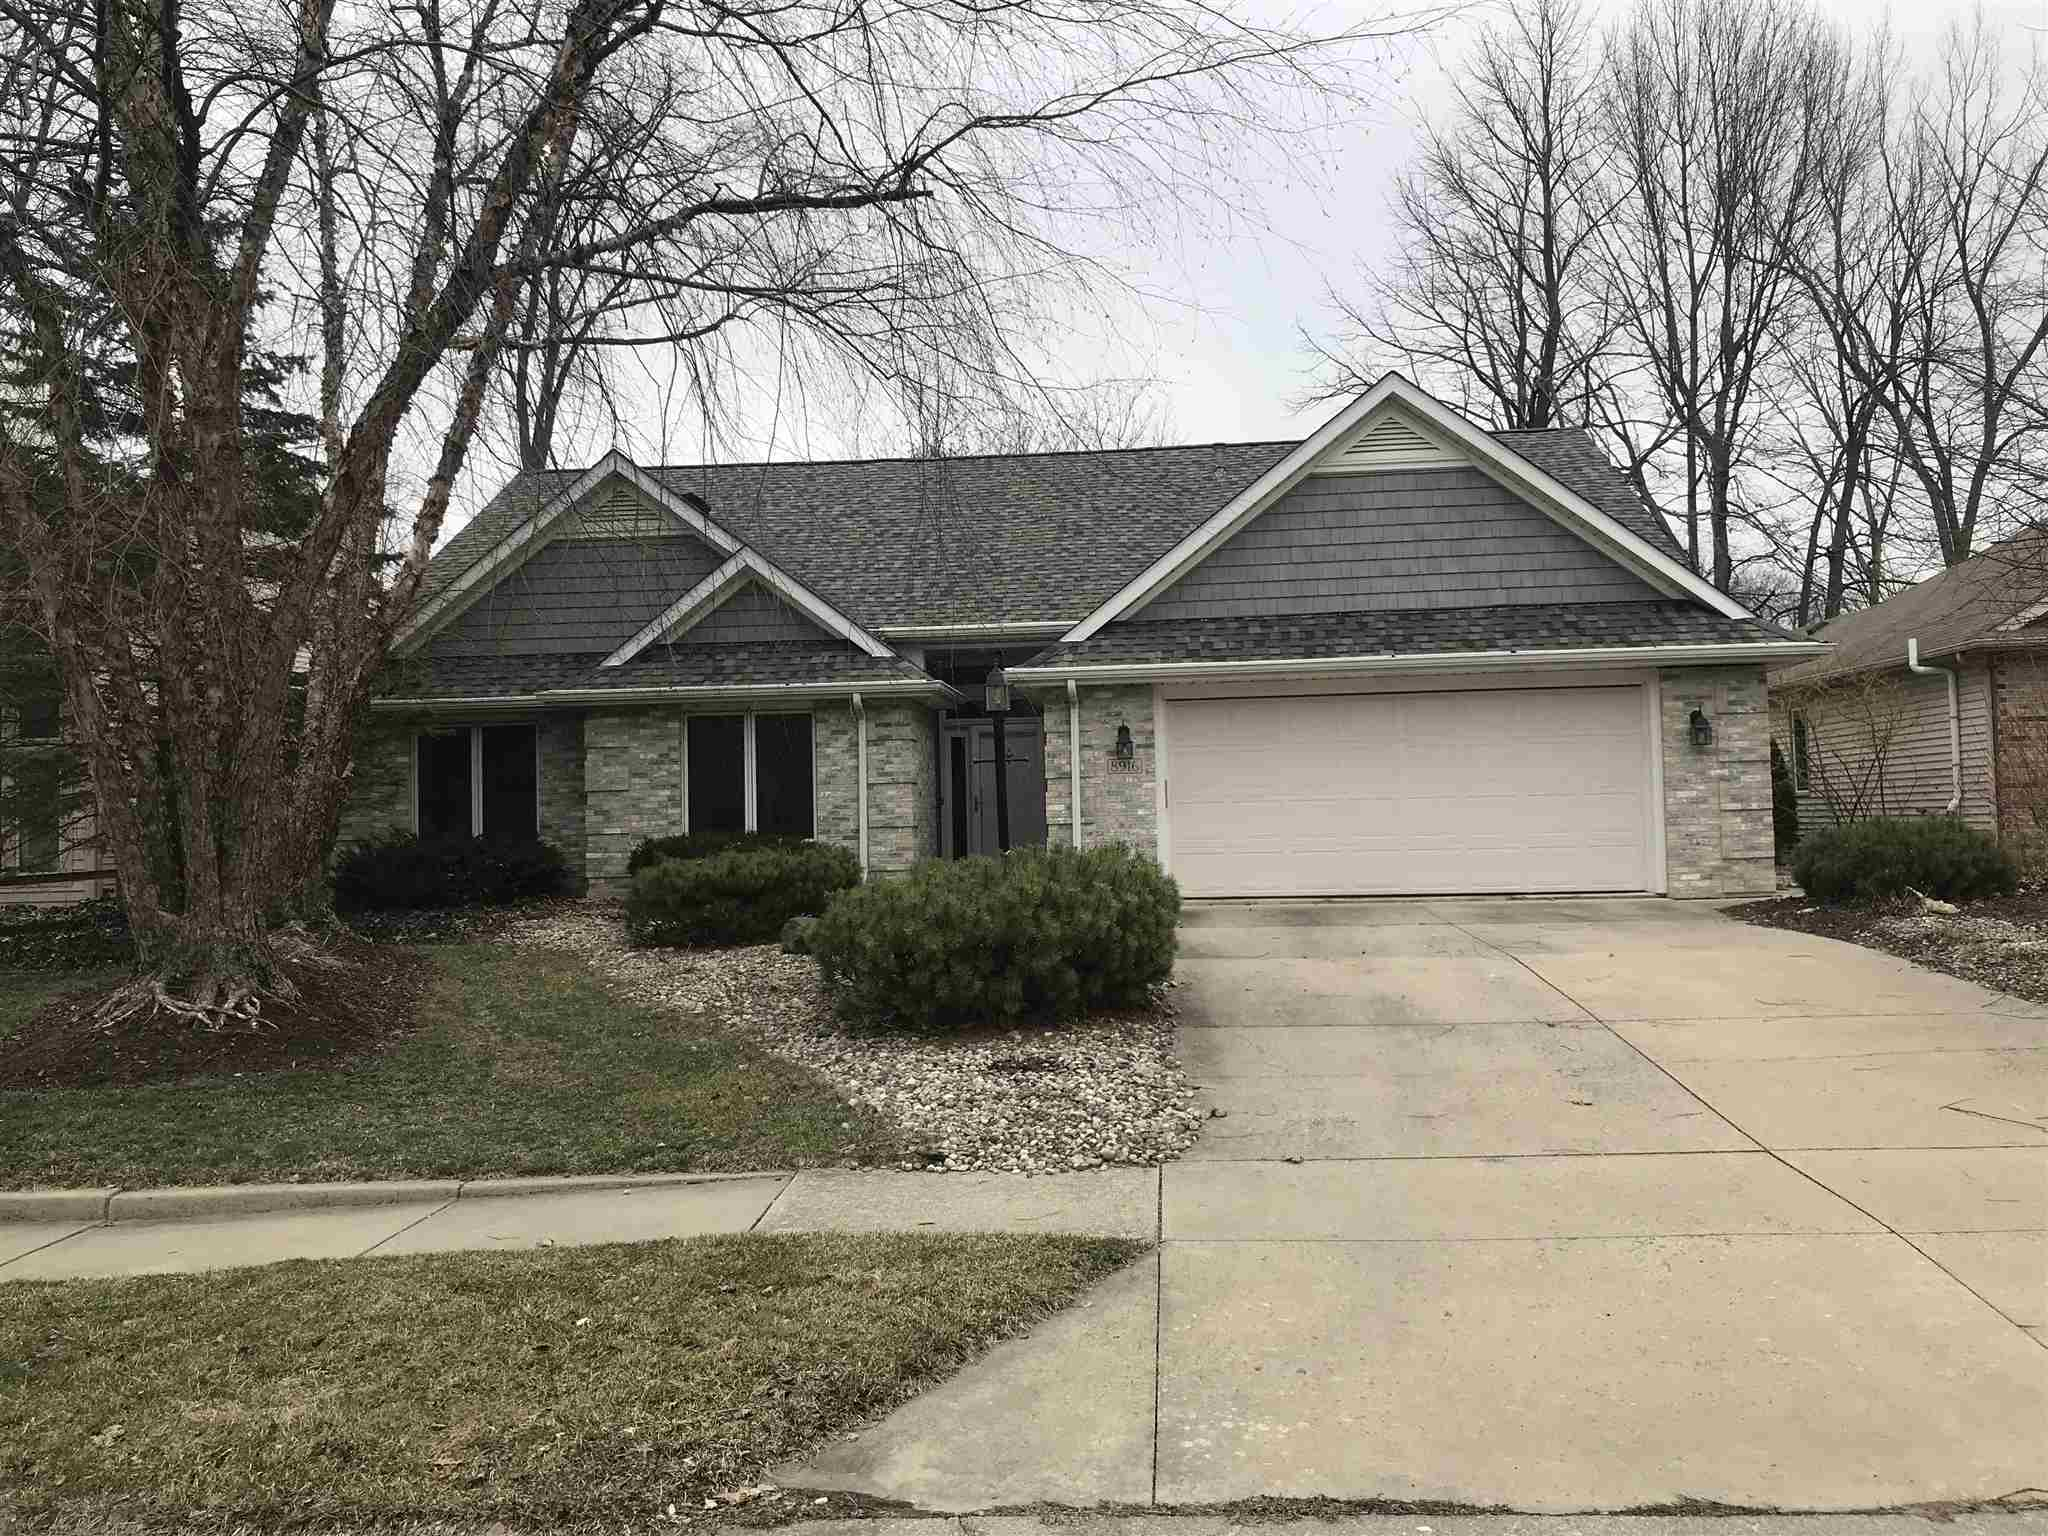 8916 SPRING FOREST Drive Fort Wayne,IN 46804 202009583